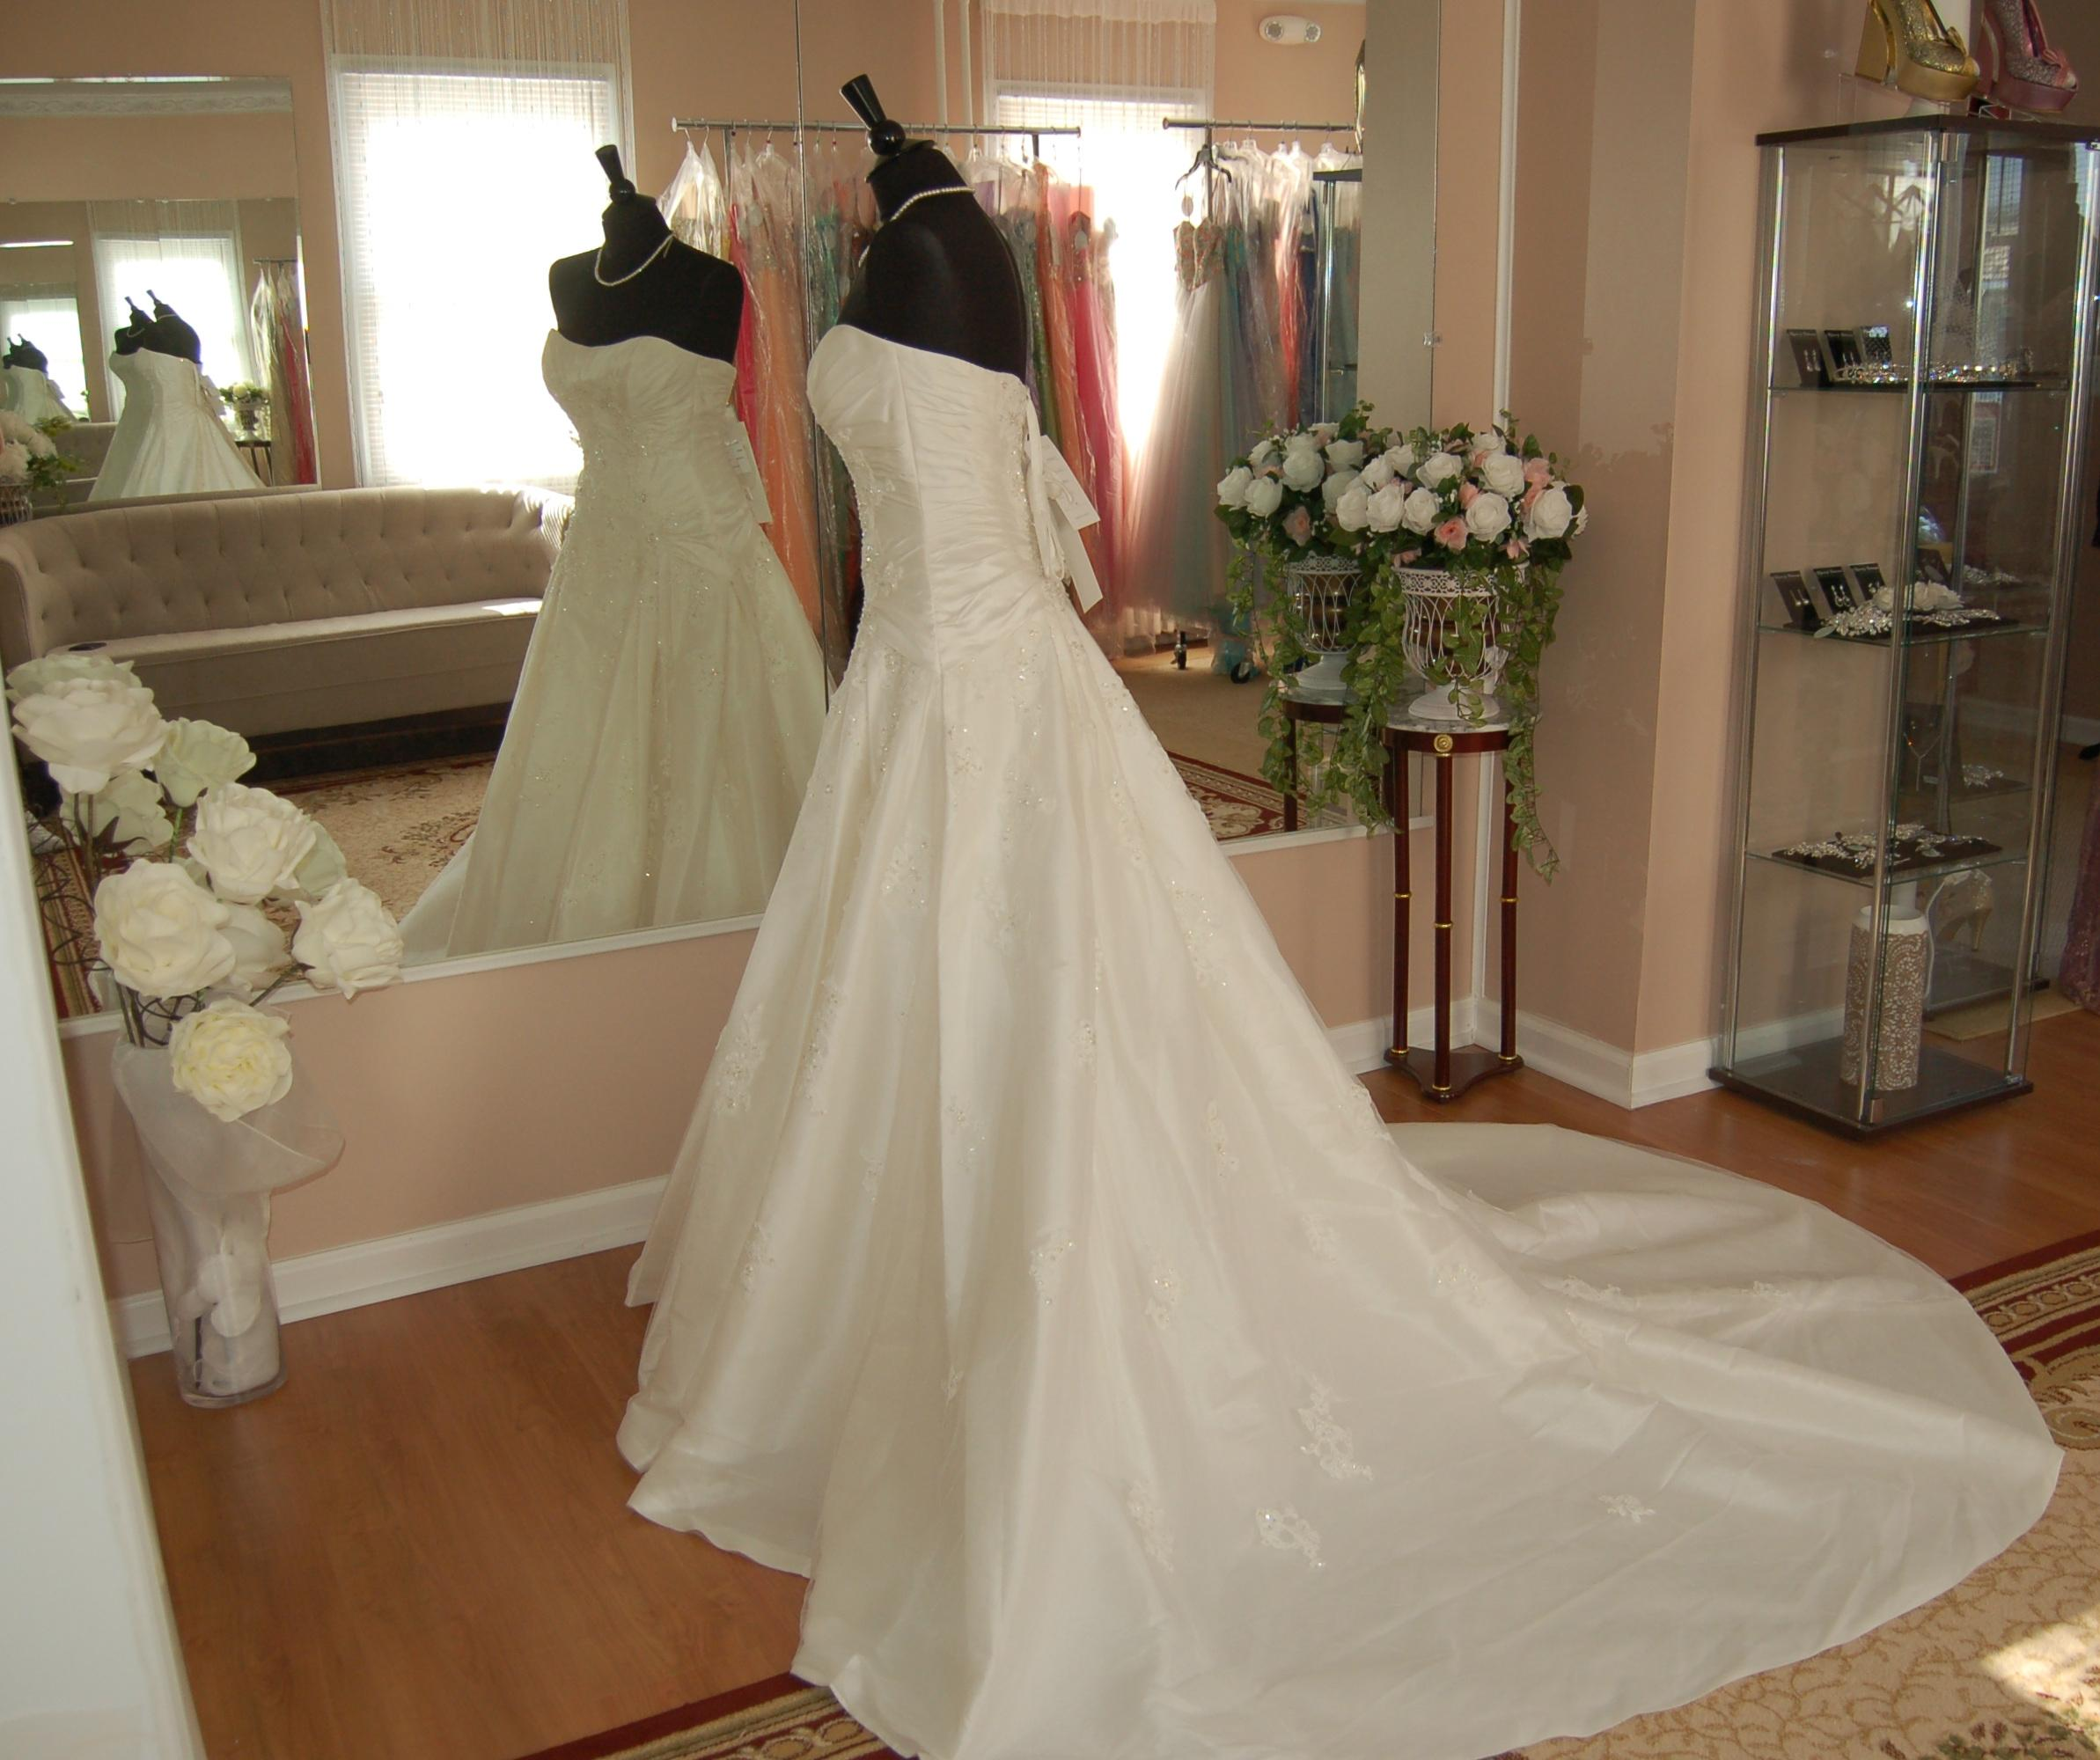 Cost Of Sophia Tolli Wedding Gowns: Sophia Tolli Ivory Taffeta 21154 Ball Gown Wedding Dress